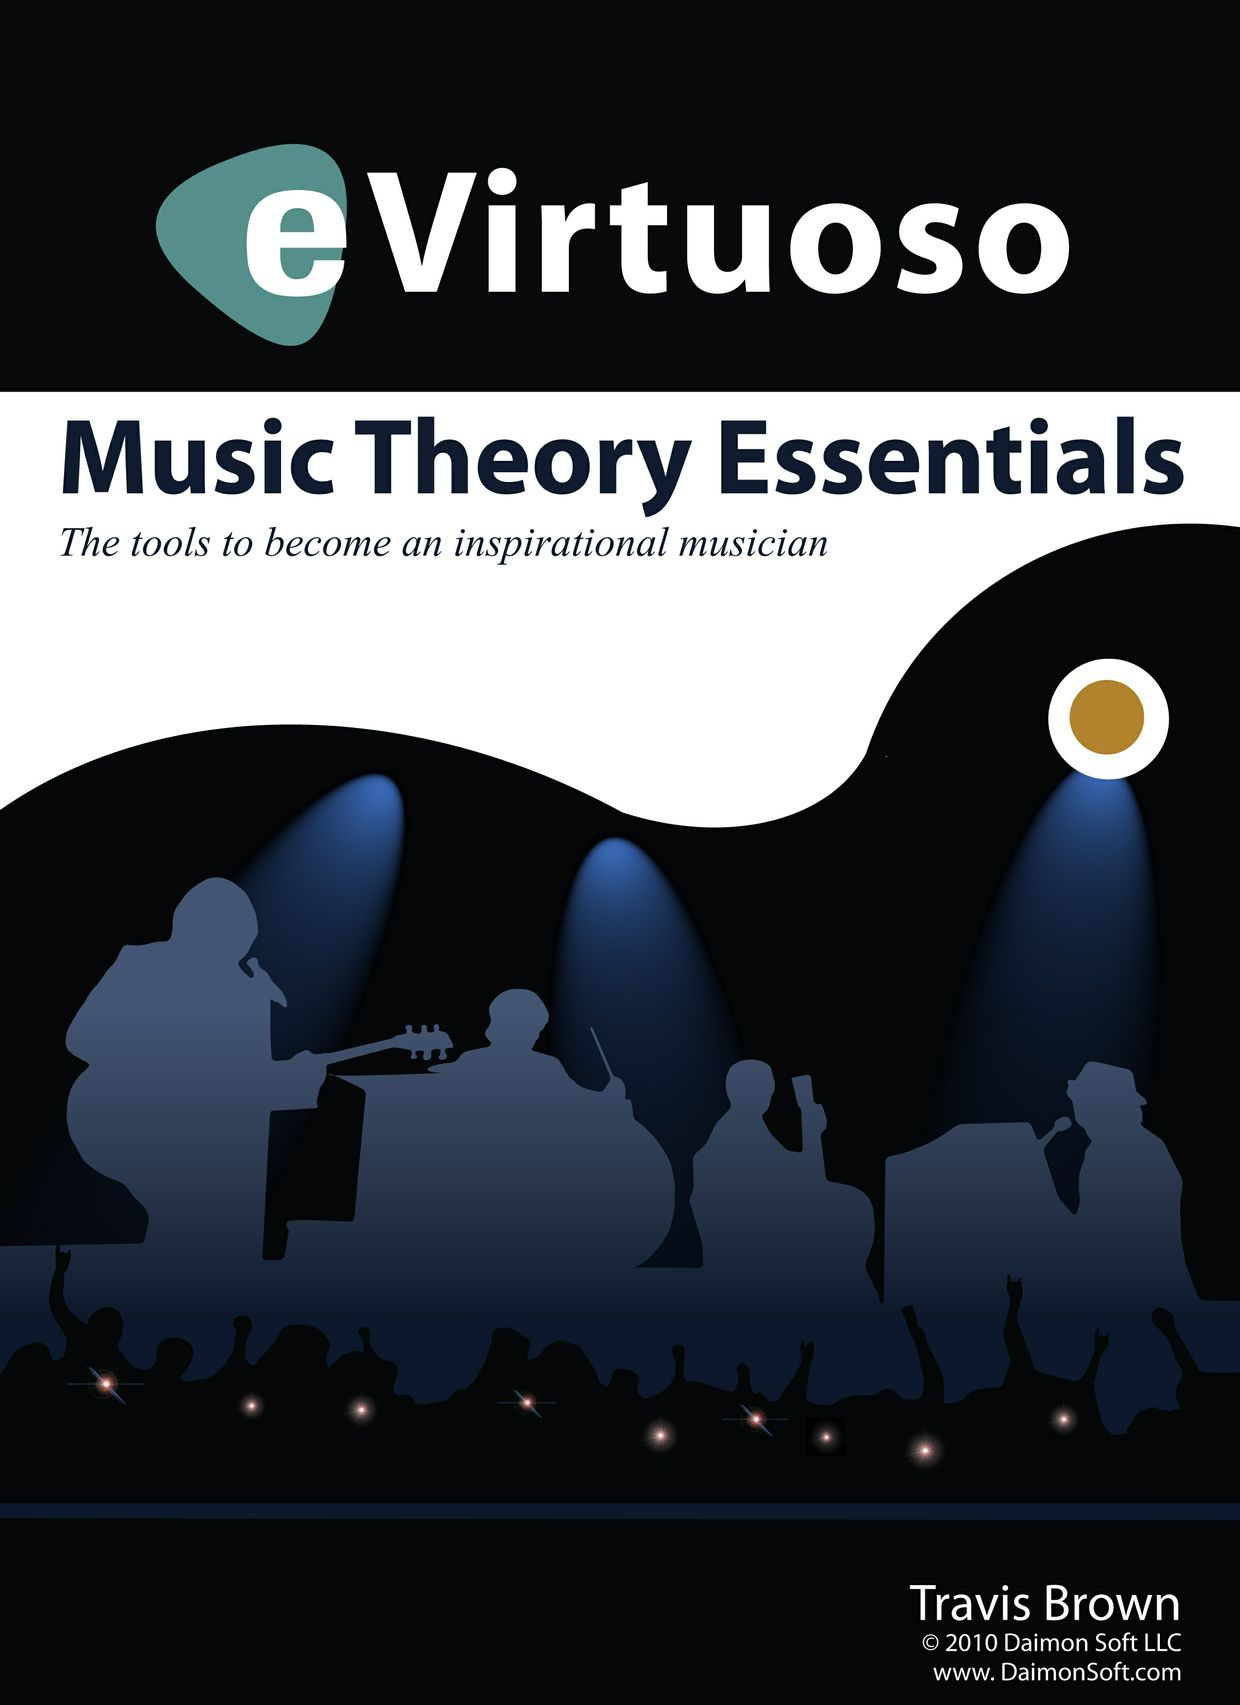 eVirtuoso-Music Theory Essentials